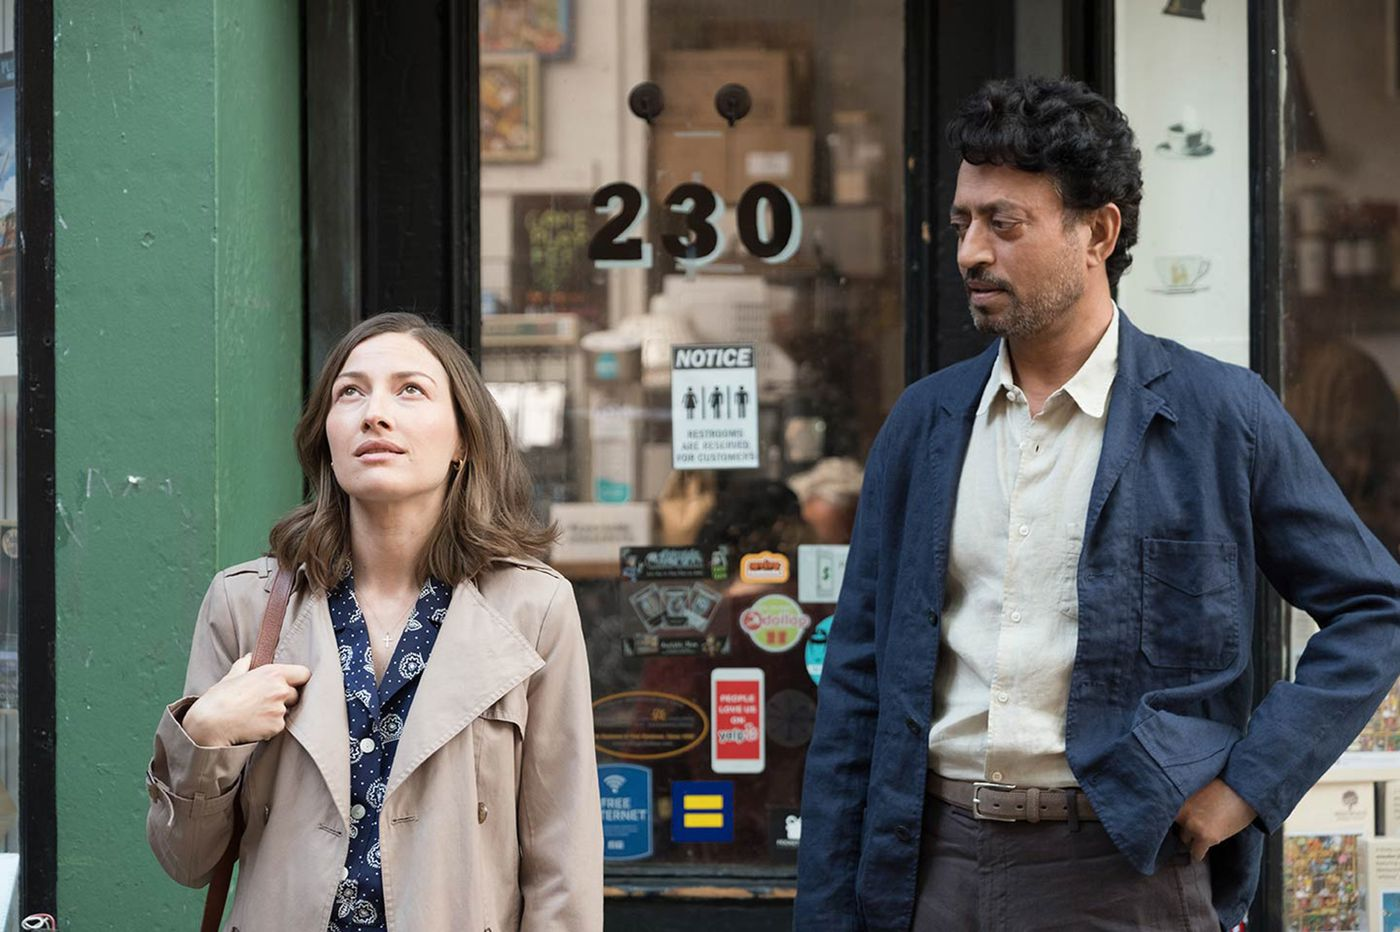 Kelly Macdonald, Irrfan Khan piece together low-key romance in 'Puzzle'